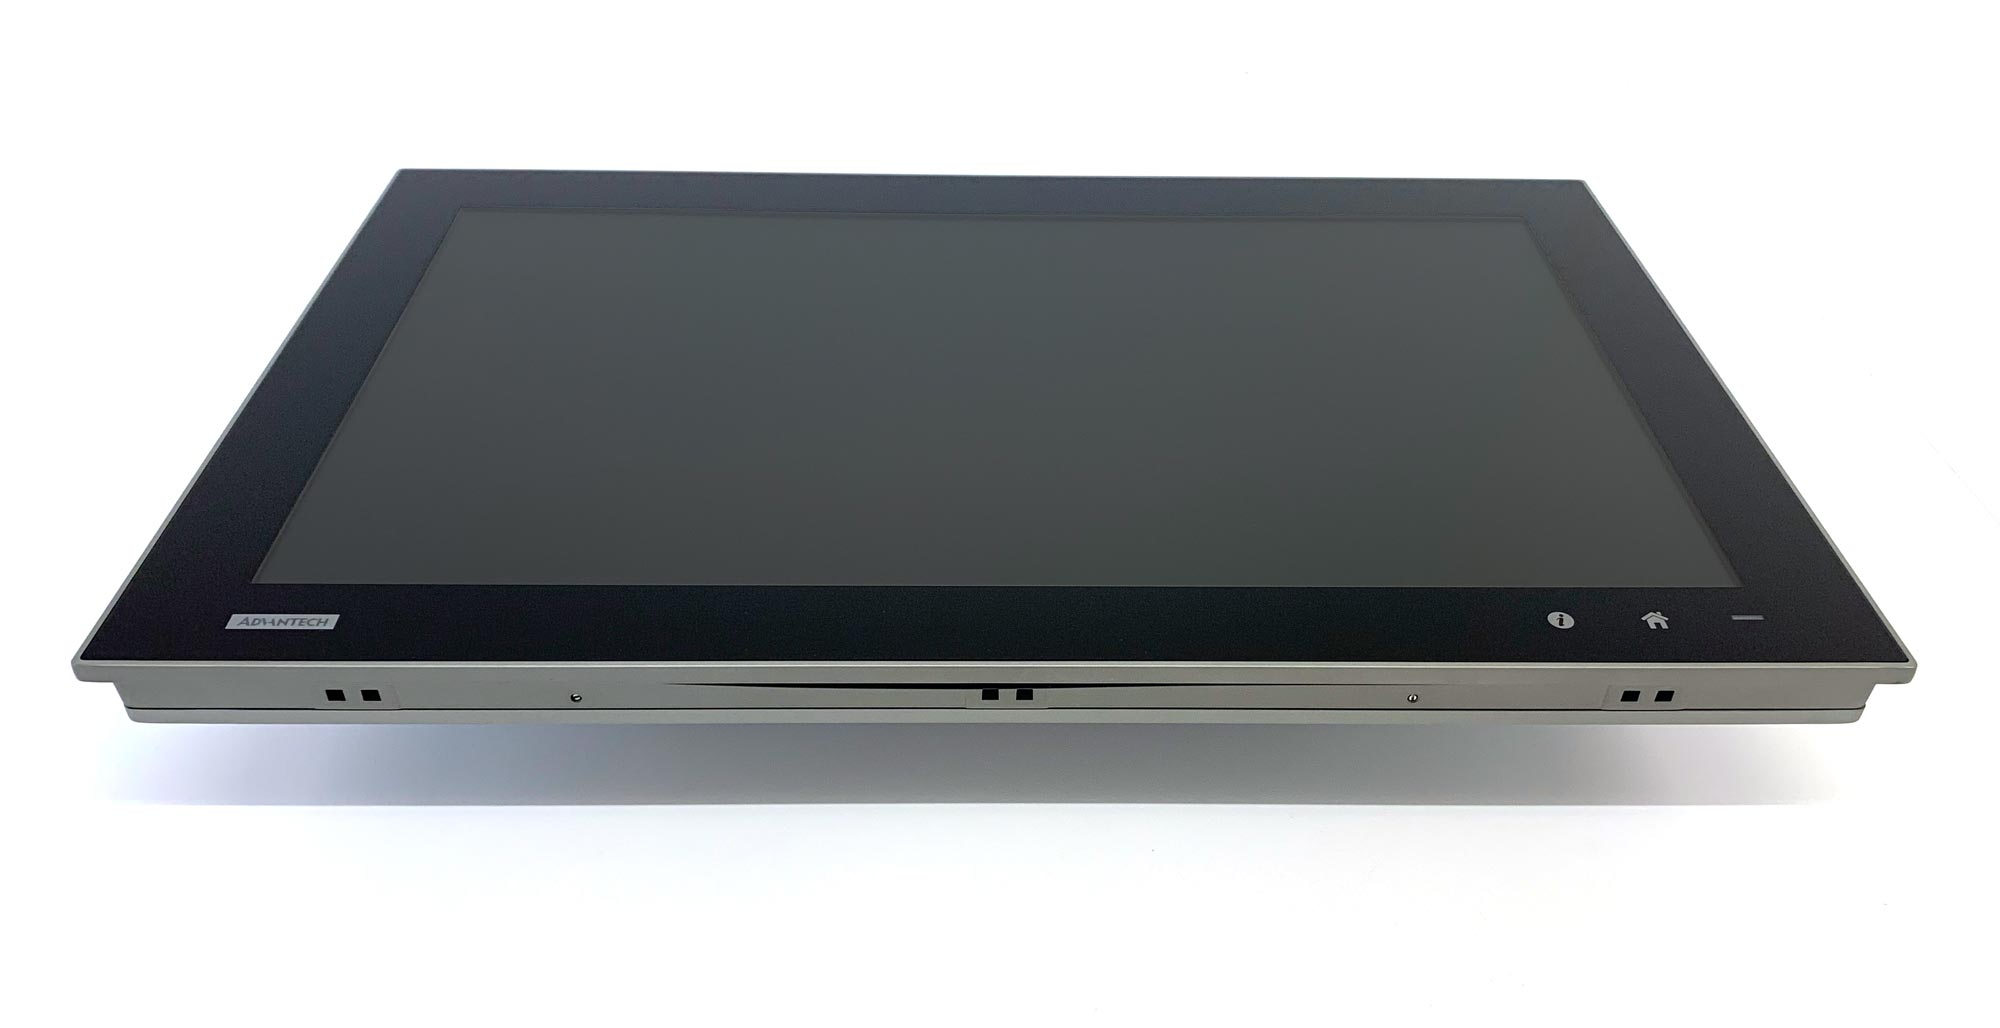 TPC-5212W - Modularer Touch-Panel PC mit 21,5-Zoll Display